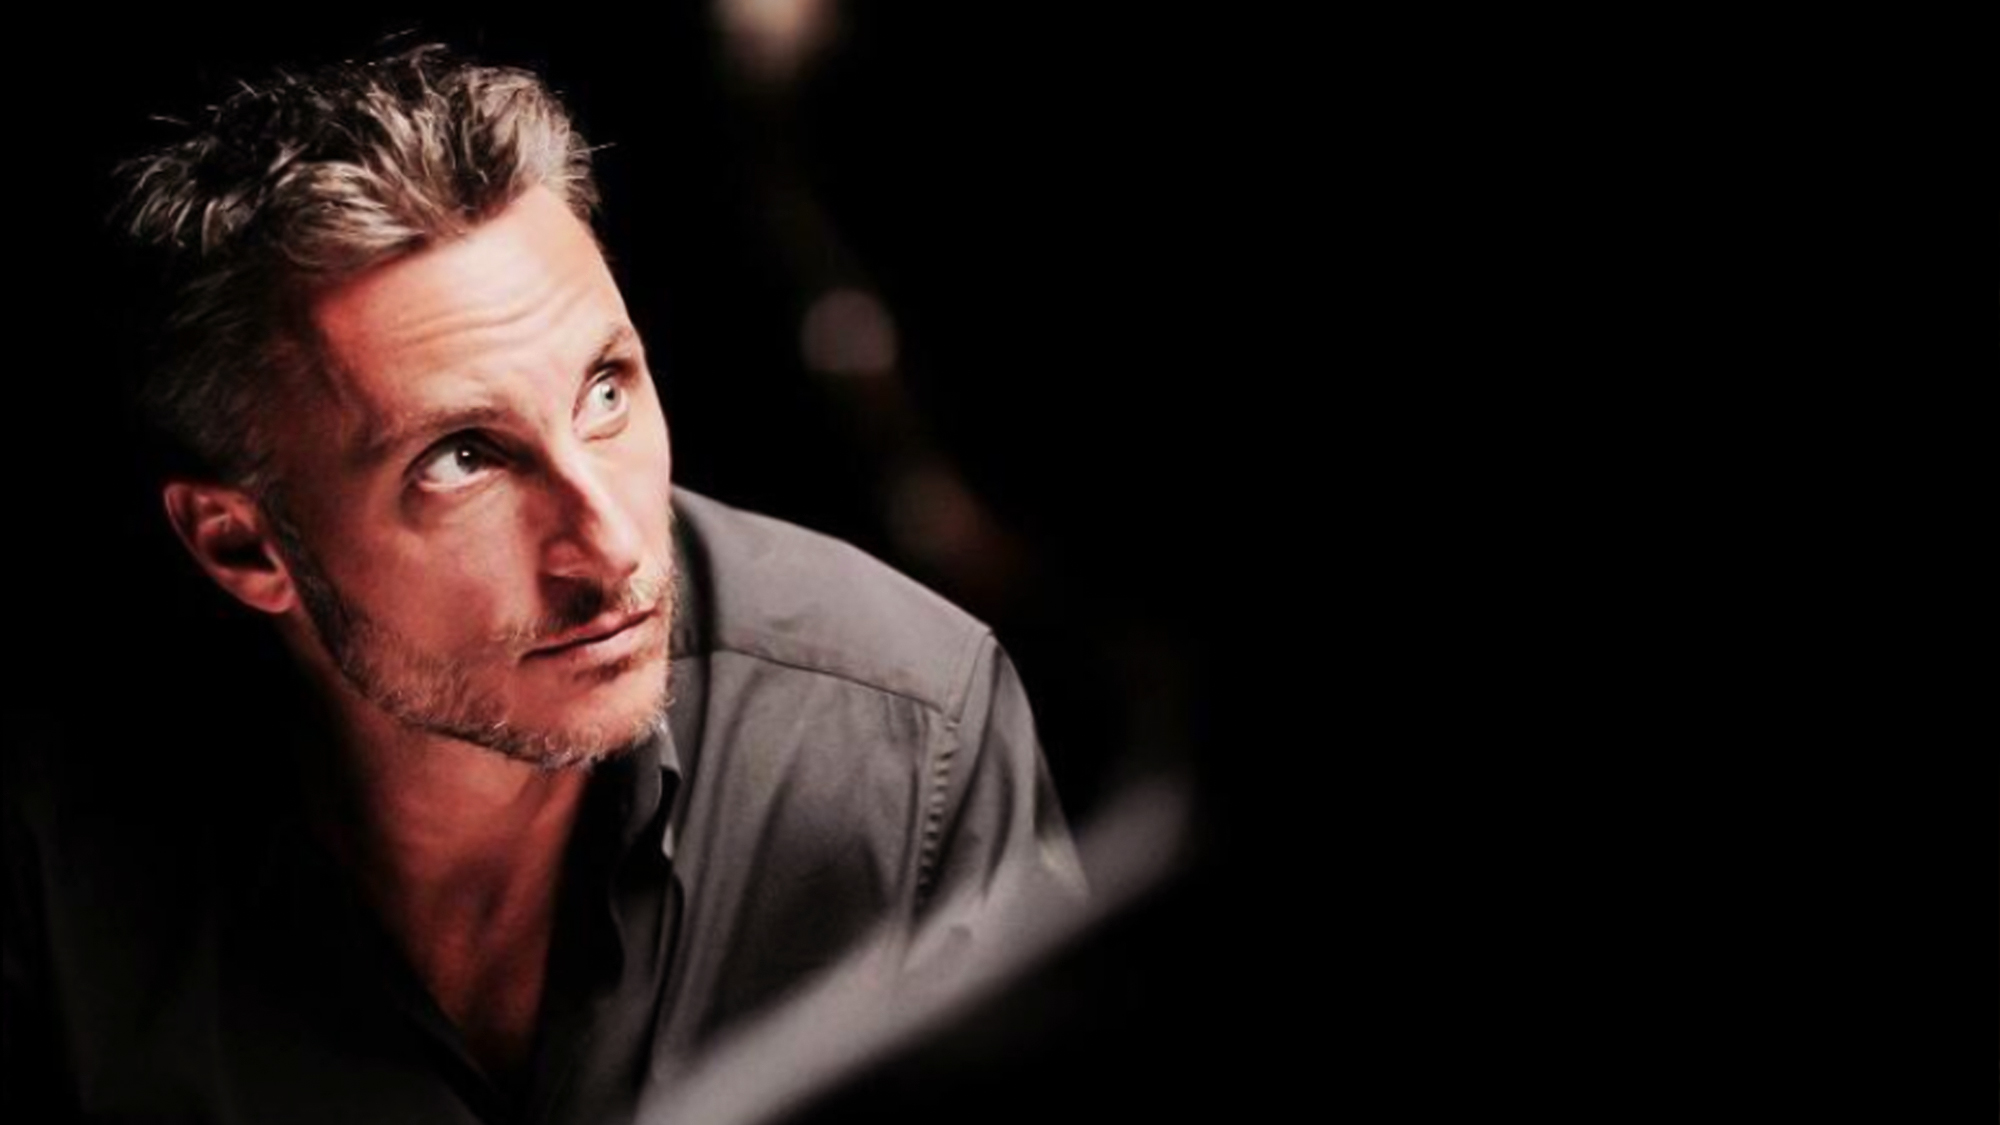 Tullian Tchividjian Is Back  So Is Scrutiny About His Past